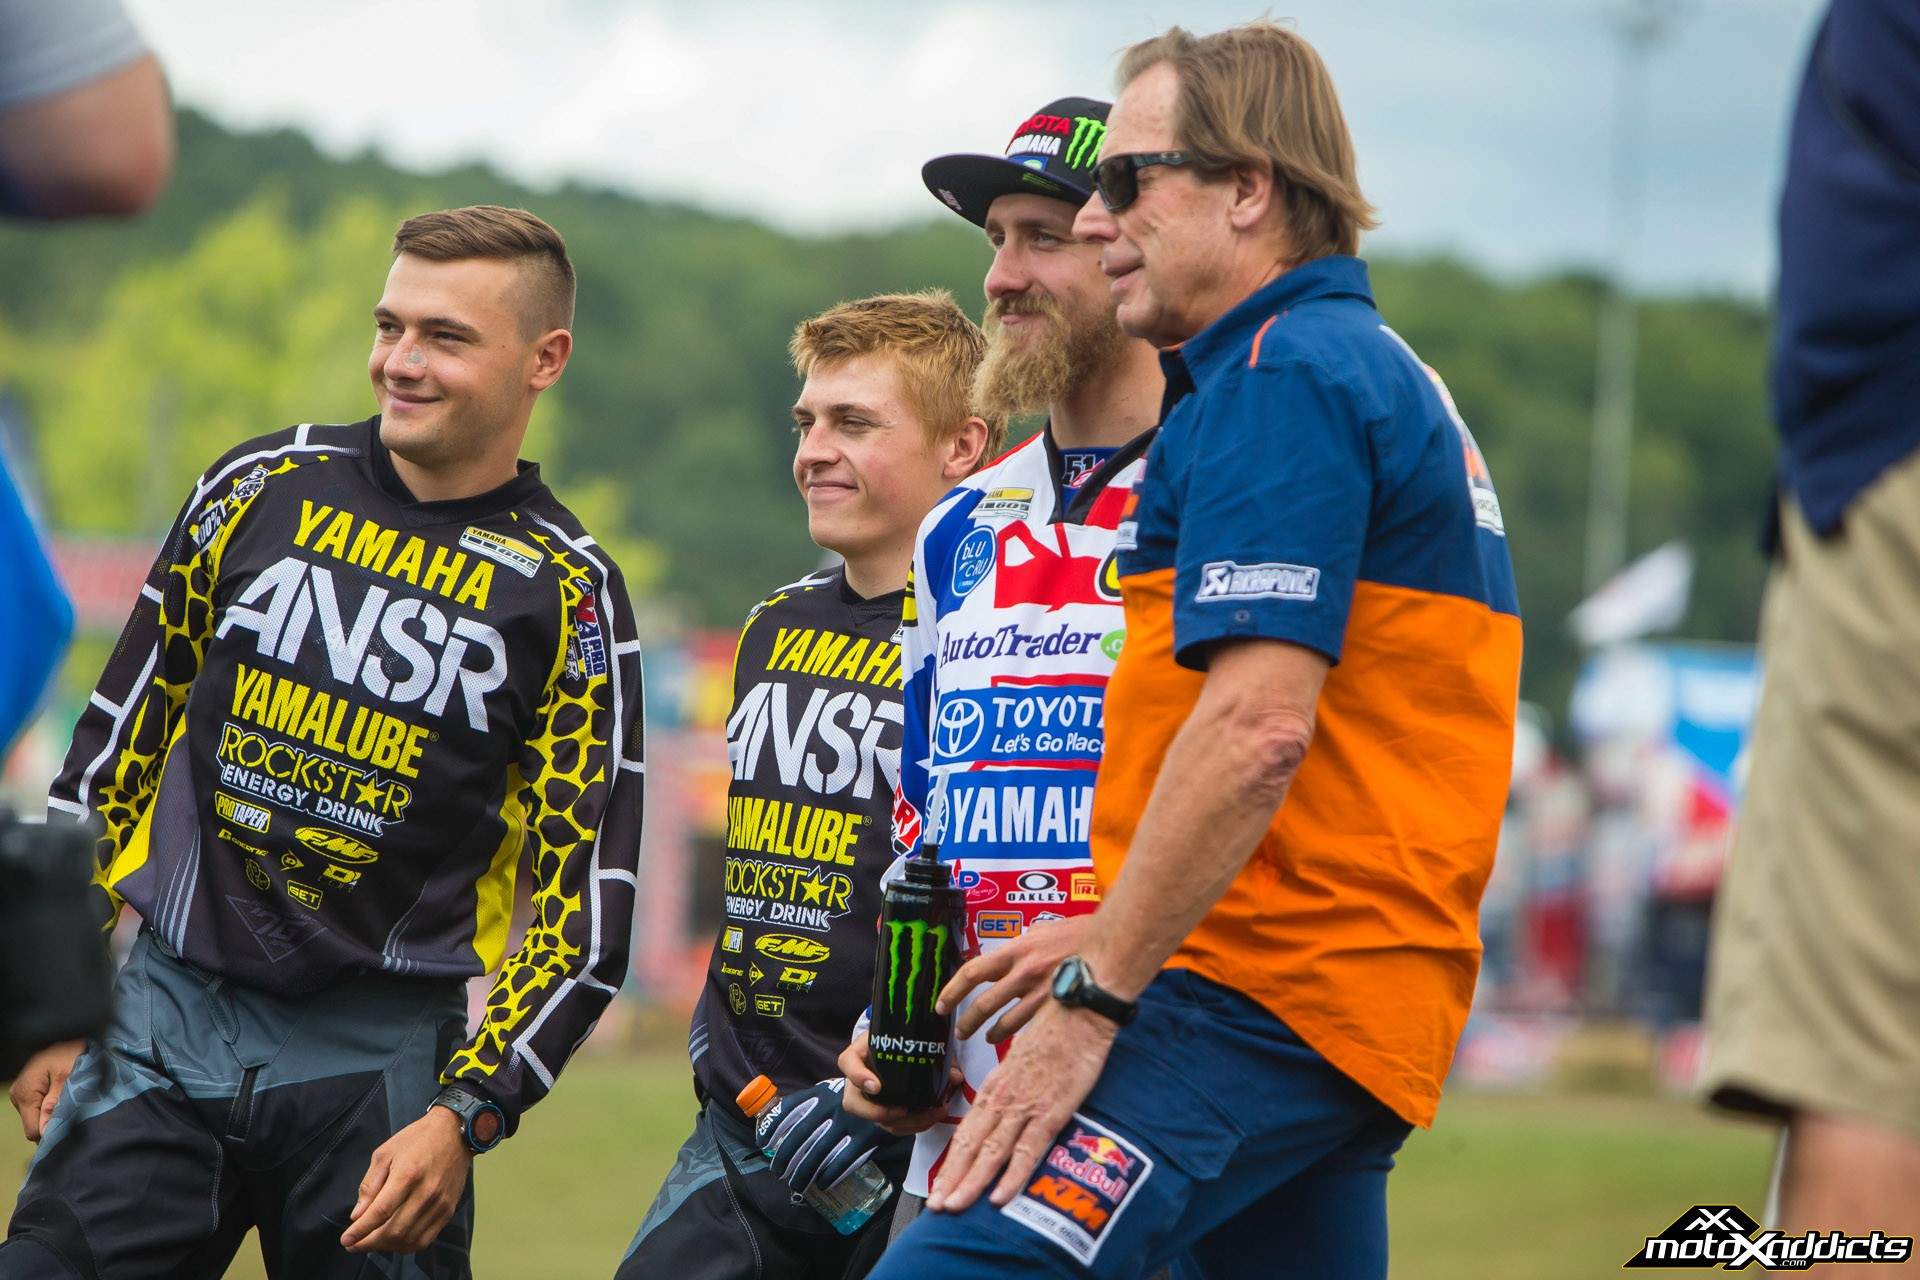 Cooper (far left) will now head to France with Jeremy Martin, Justin Barcia and Roger DeCoster to contest the 2015 MXoN next weekend. Go USA! Photo by: Hoppenworld